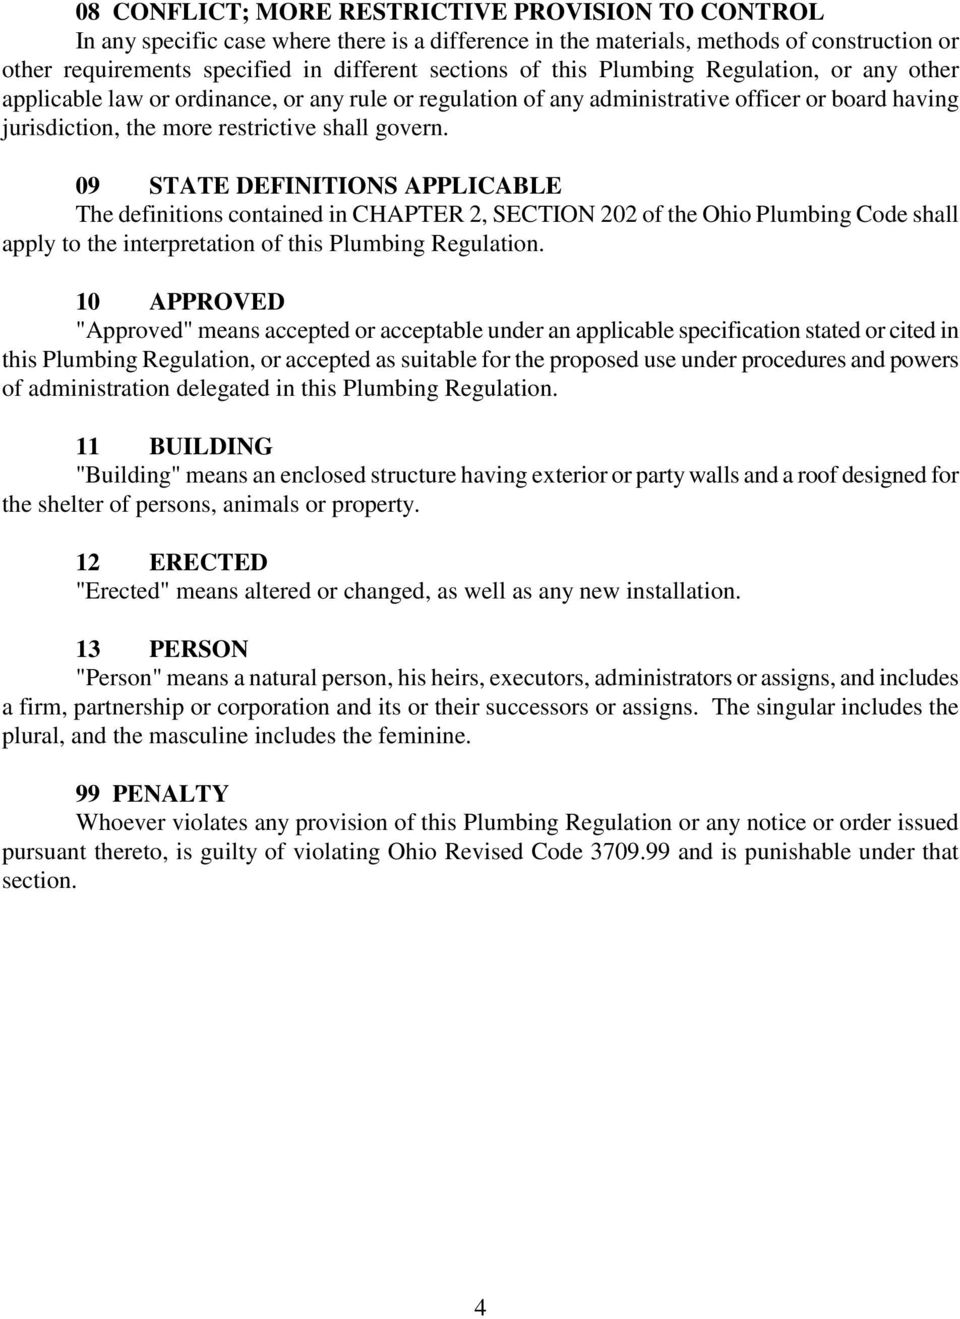 09 STATE DEFINITIONS APPLICABLE The definitions contained in CHAPTER 2, SECTION 202 of the Ohio Plumbing Code shall apply to the interpretation of this Plumbing Regulation.